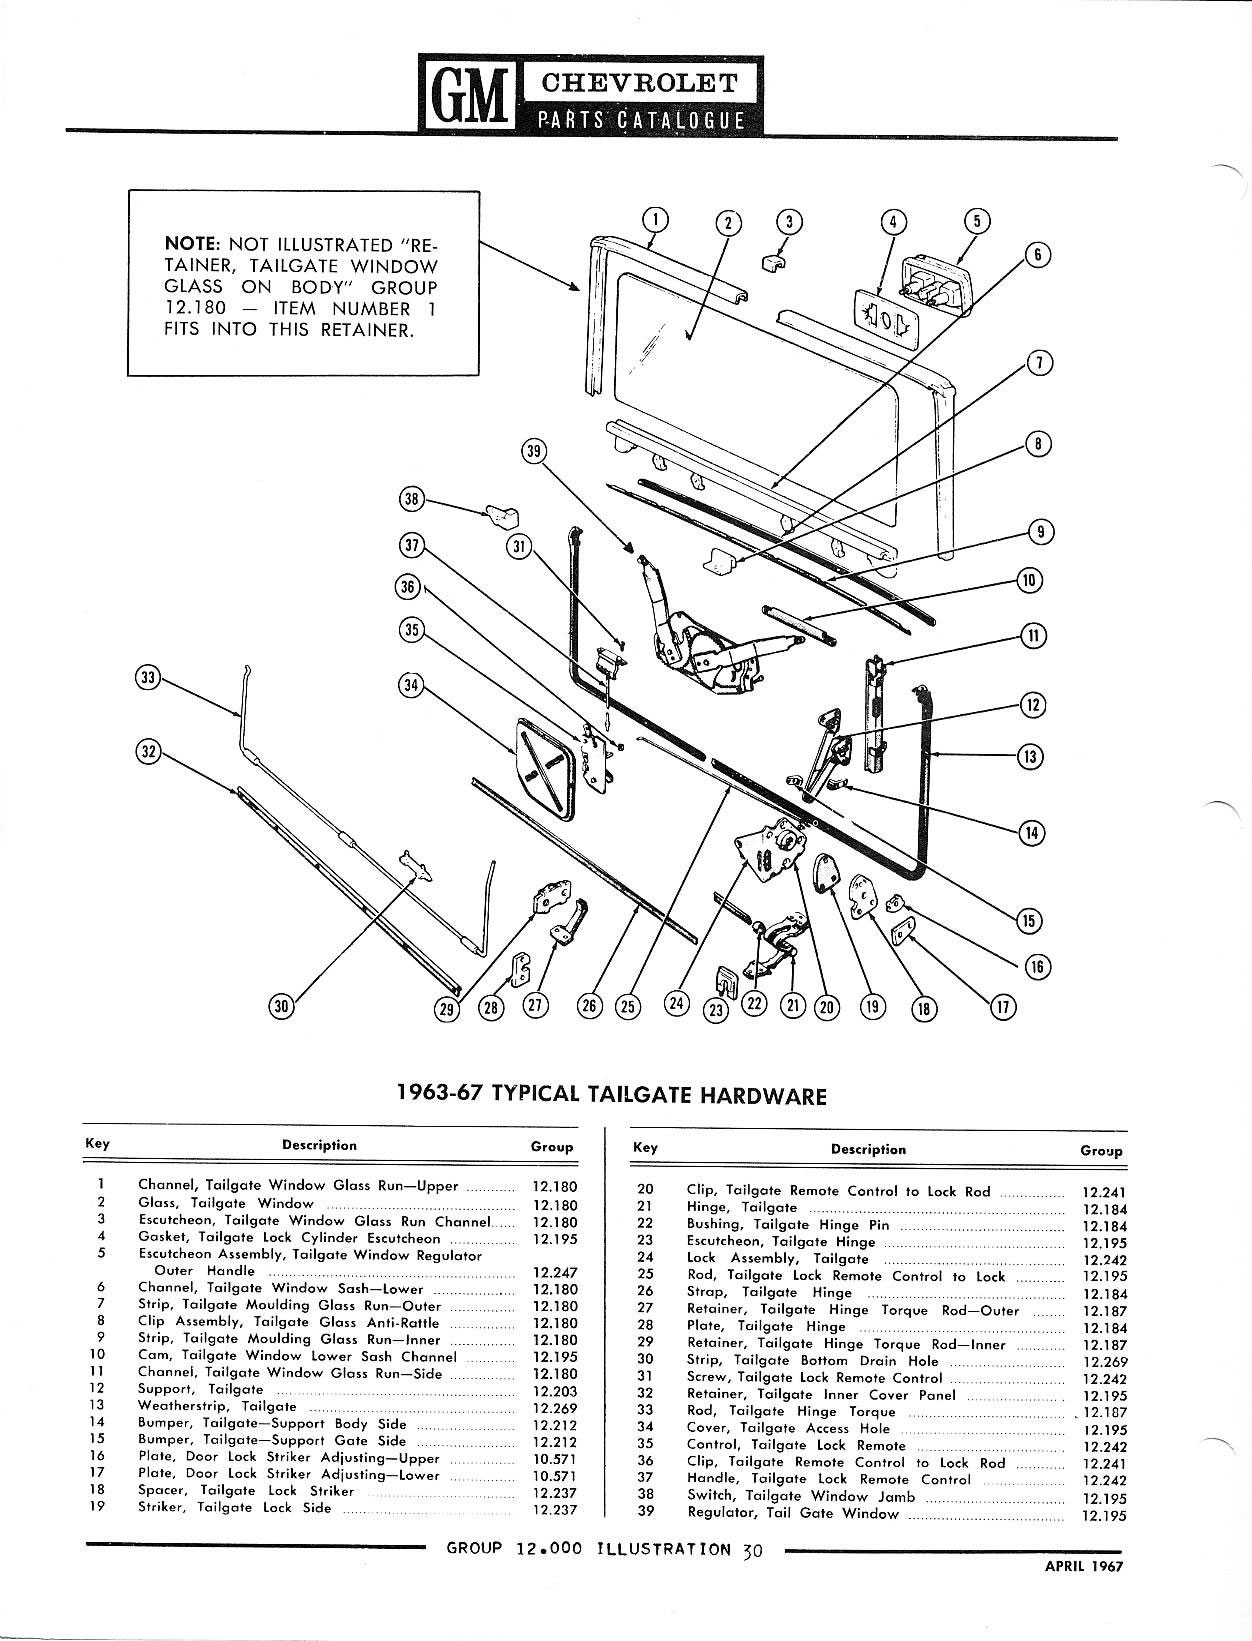 1958 chevrolet wiring diagram manual 58 chevy ebay